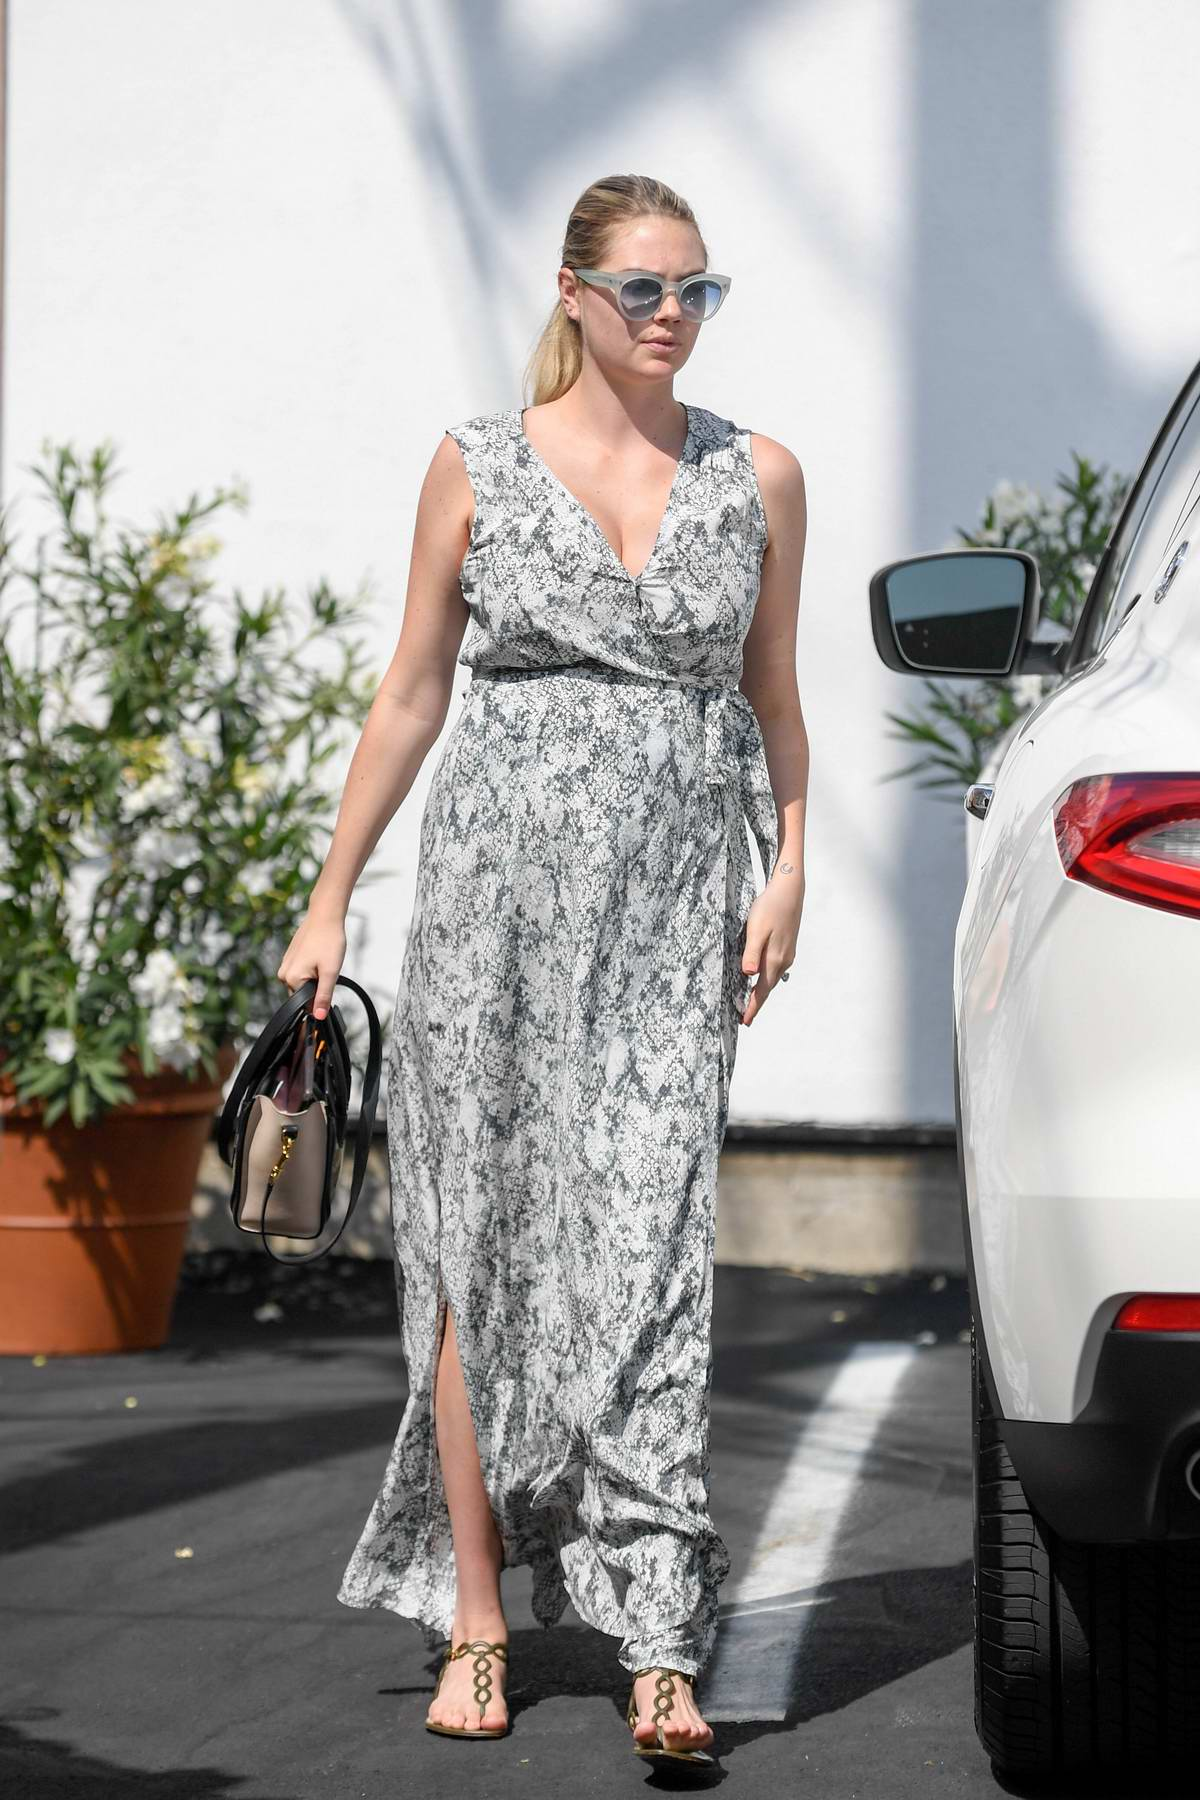 Kate Upton wears a patterned maxi dress as she stops by Carasoin Day Spa & Skin Clinic in West Hollywood, Los Angeles